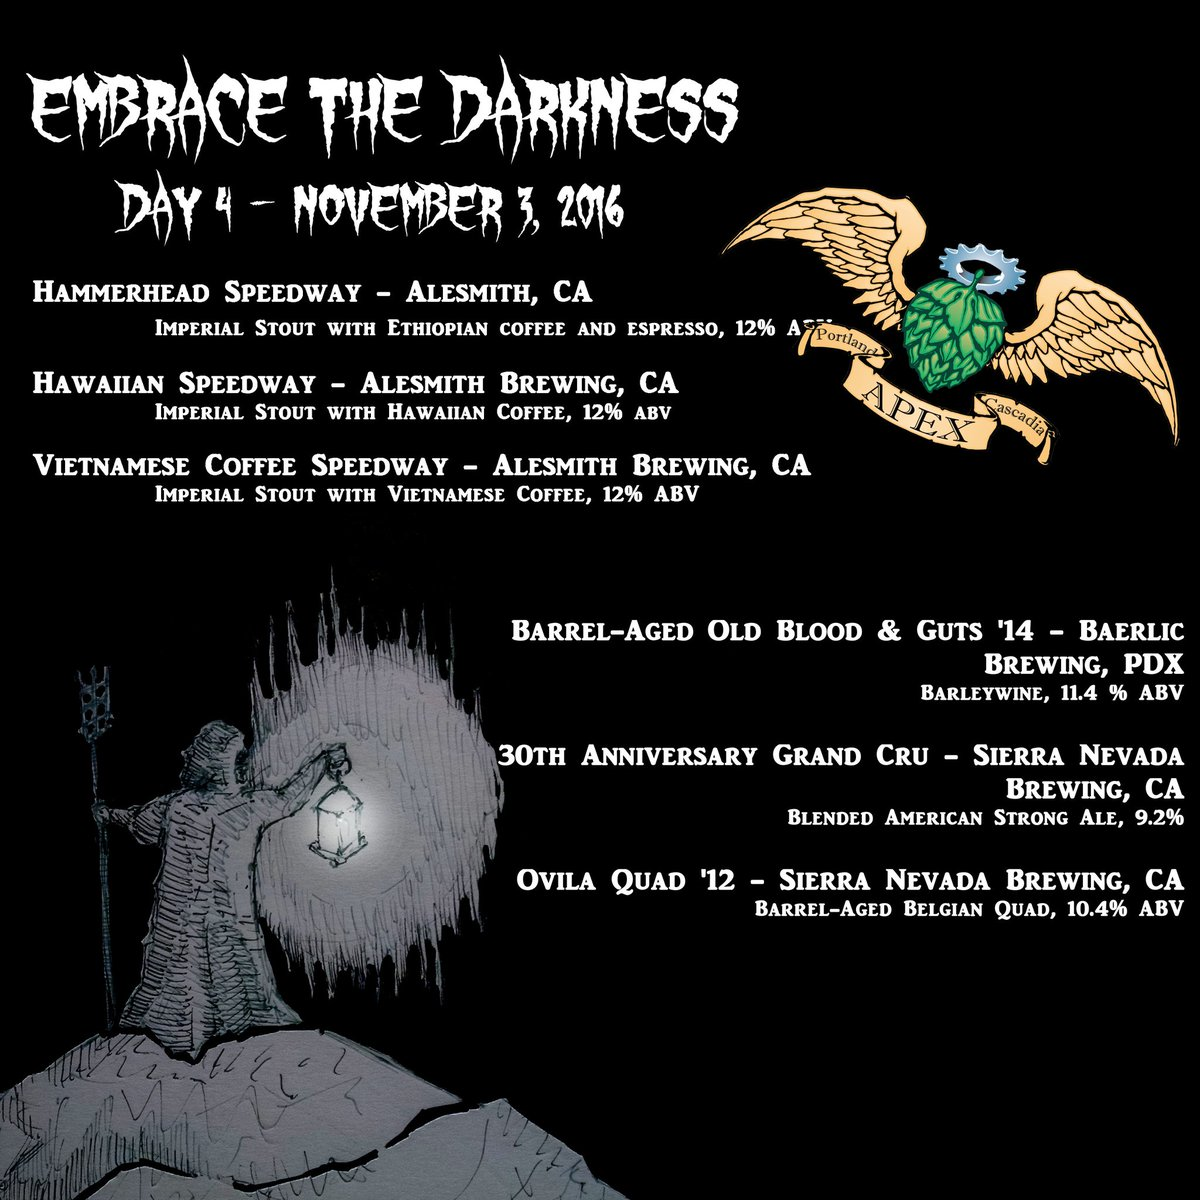 APEX Embrace the Darkness 2016 - Day 4